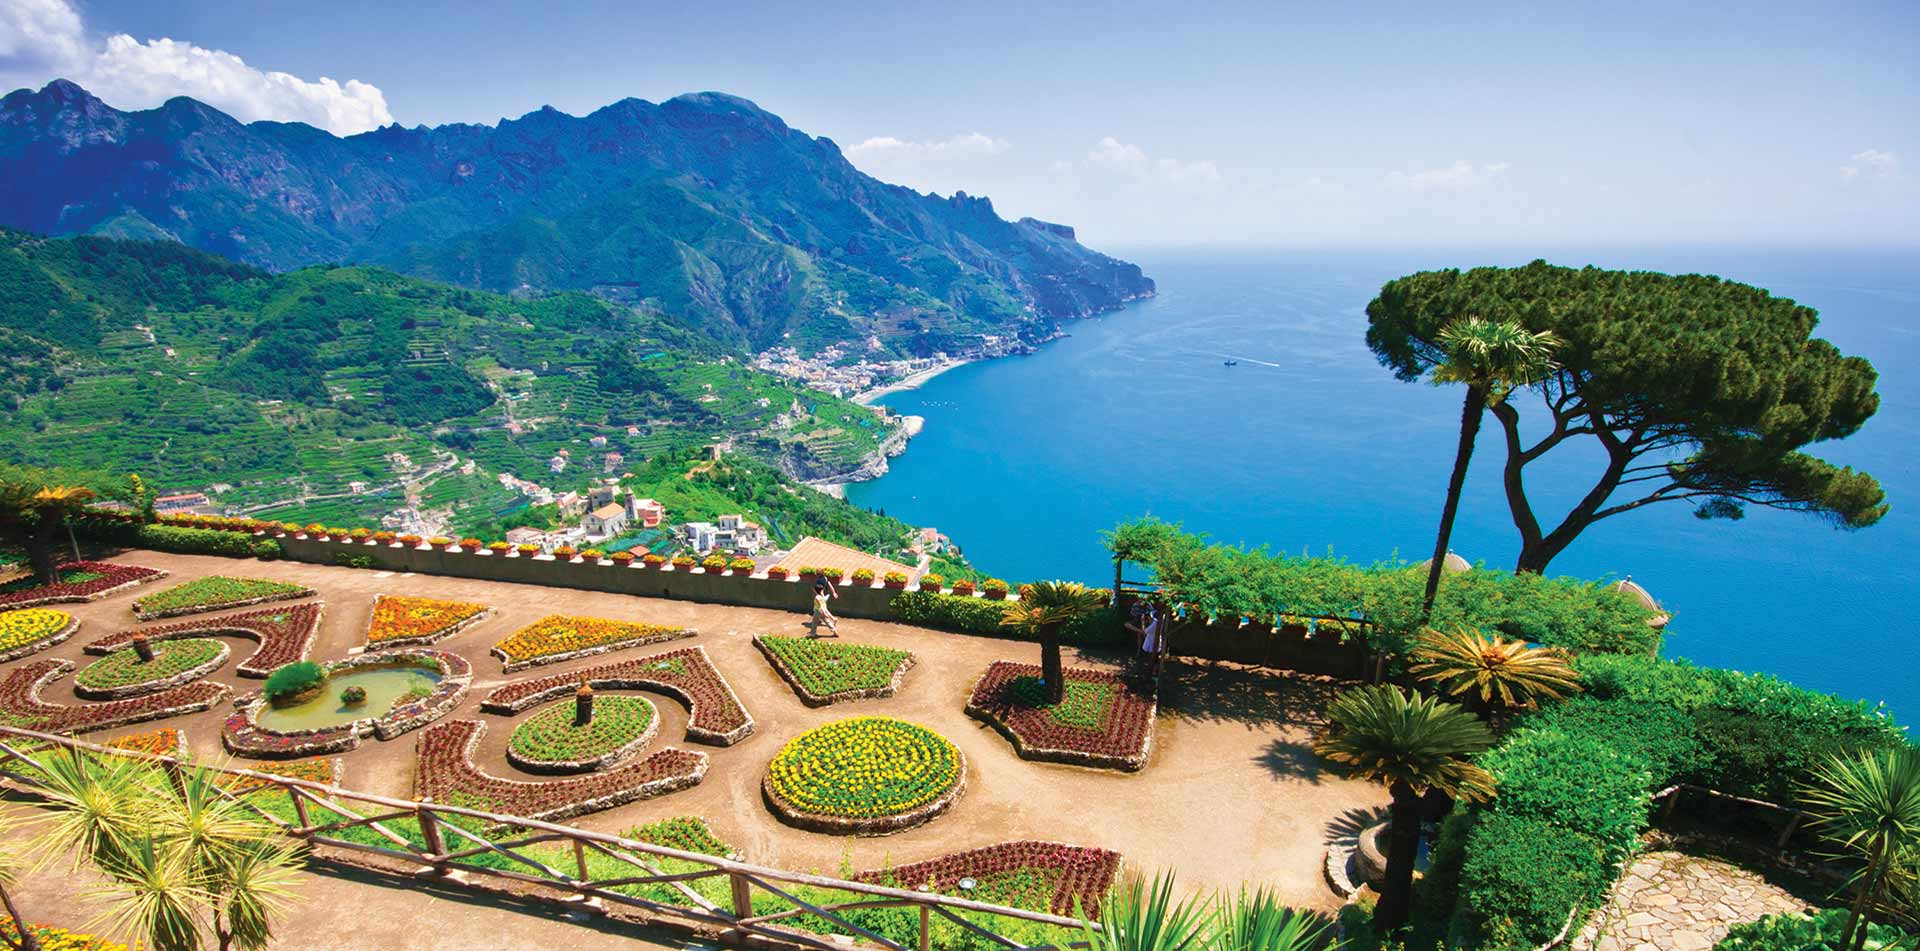 Gardens at Villa Rufolo in Ravello, Italy